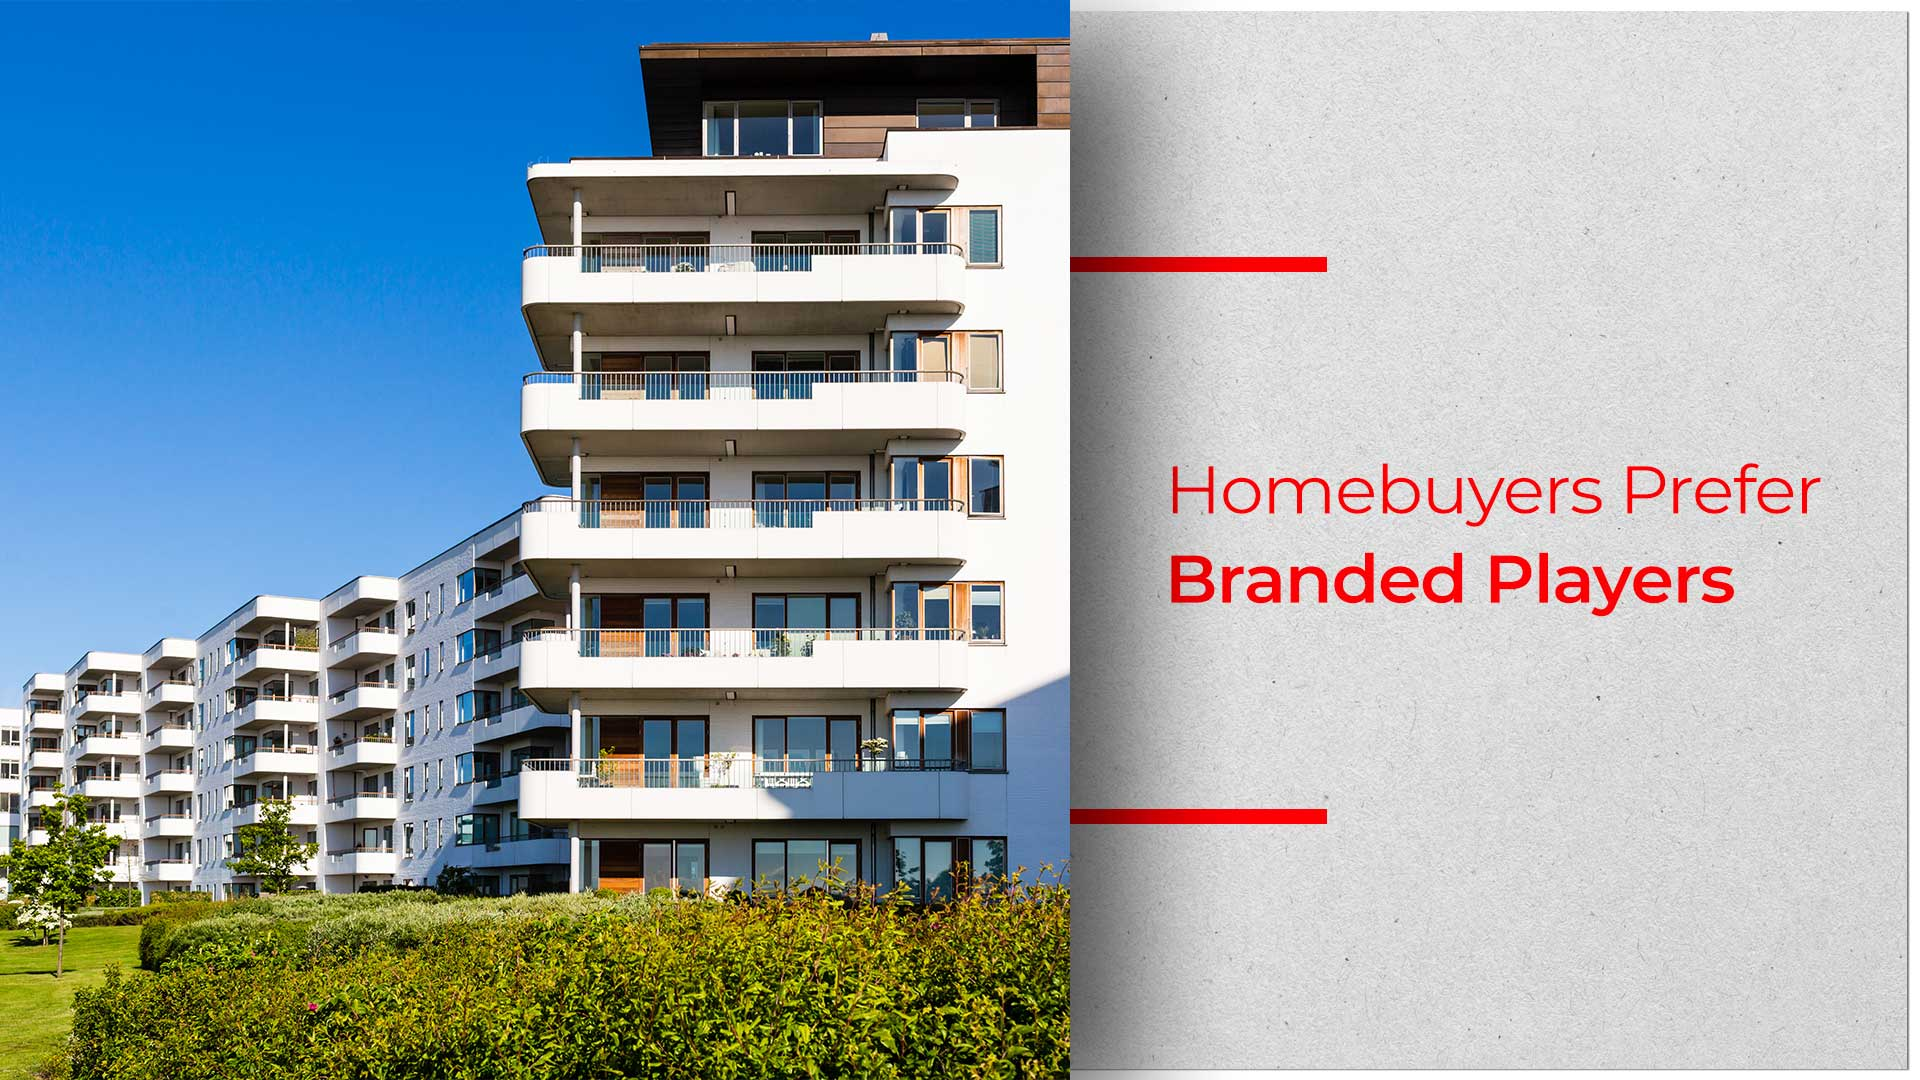 Branded Players Dominate Residential Real Estate